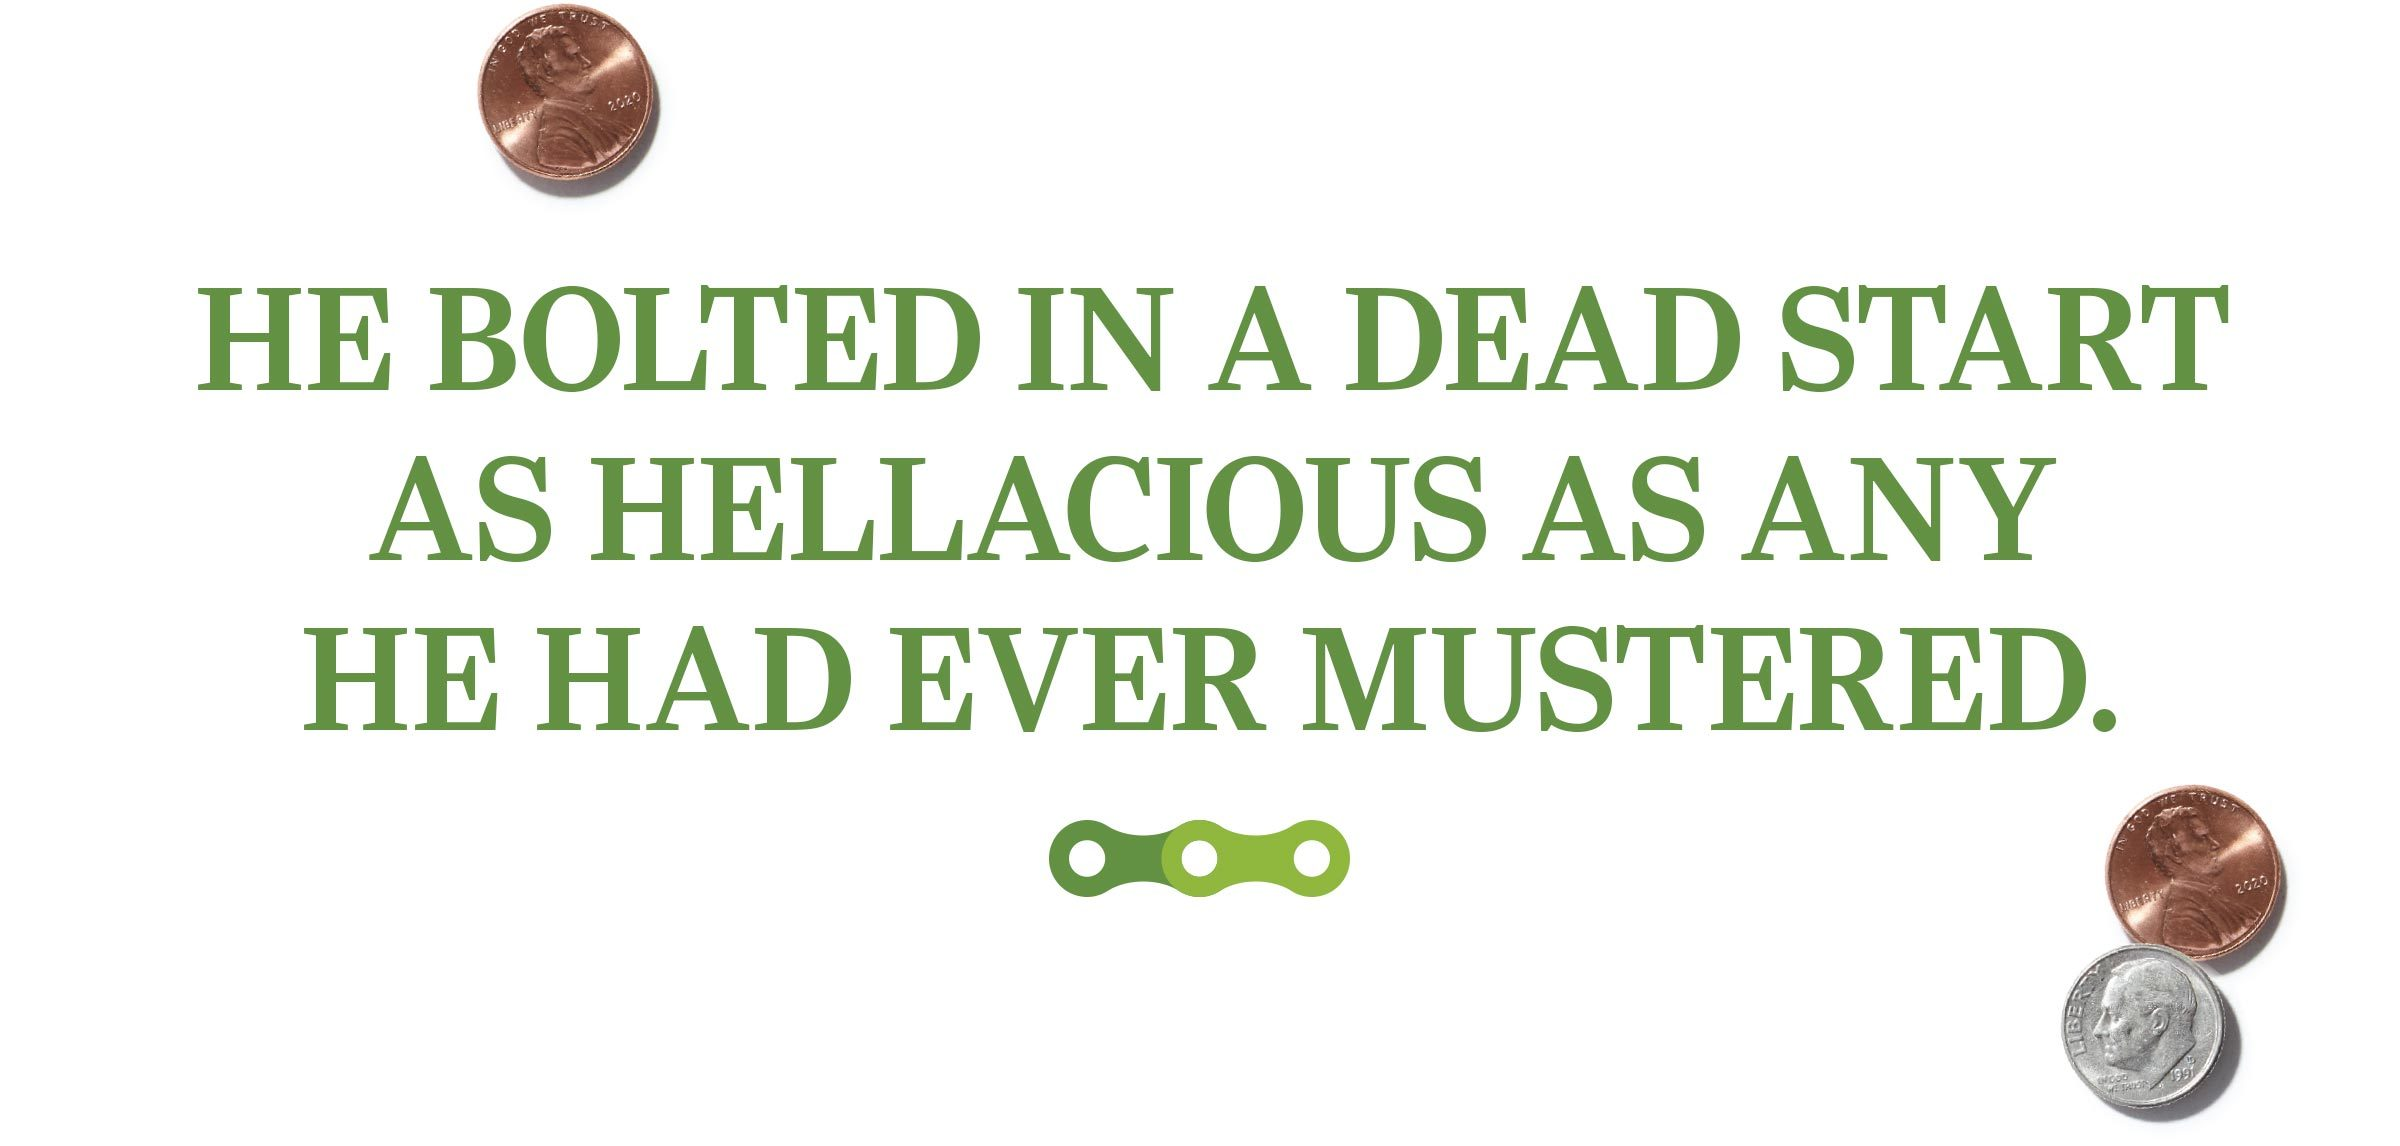 text: He bolted in a dead start as hellacious as any he had ever mustered.